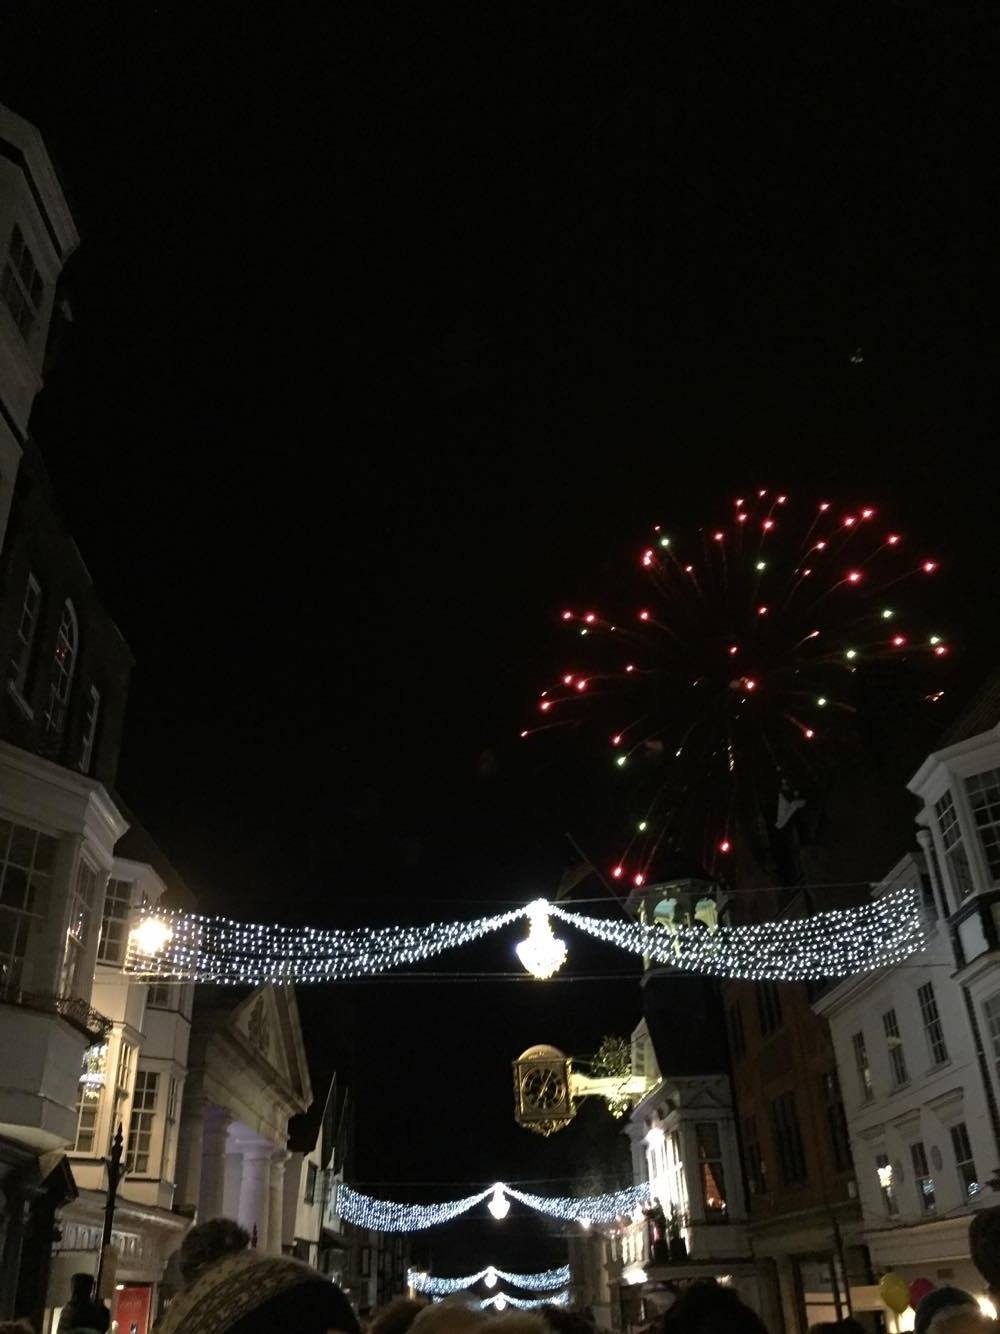 Good Additionally To The High Street Excitement, There Is Also A Christmas  Market That Opened In Guildford Called The Village. Gabrielle And I  Especially Liked ...